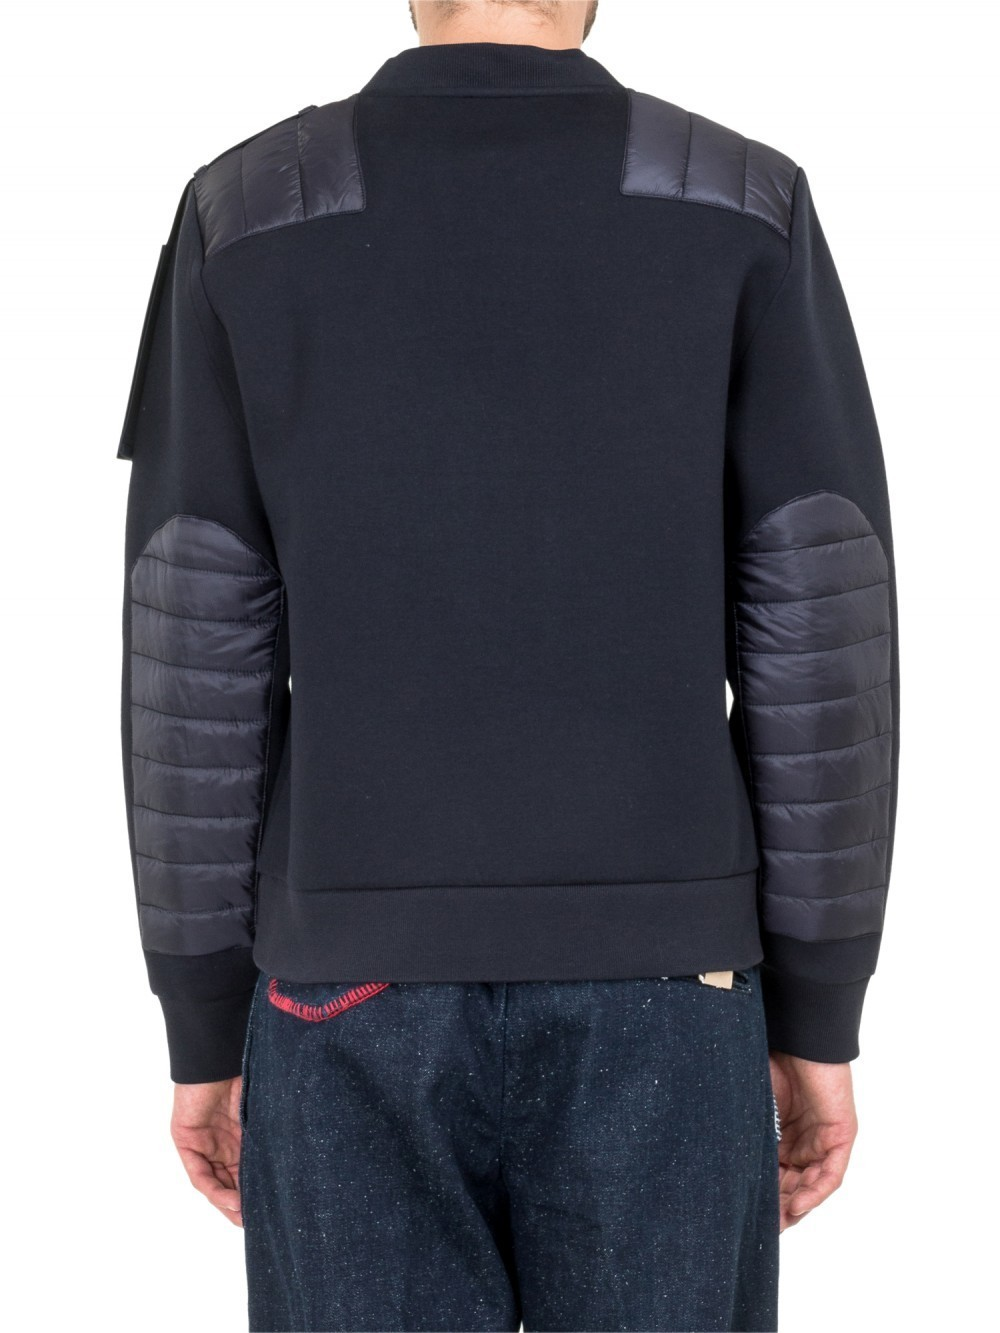 2017AW【MONCLER】C Padded Panelスウェット